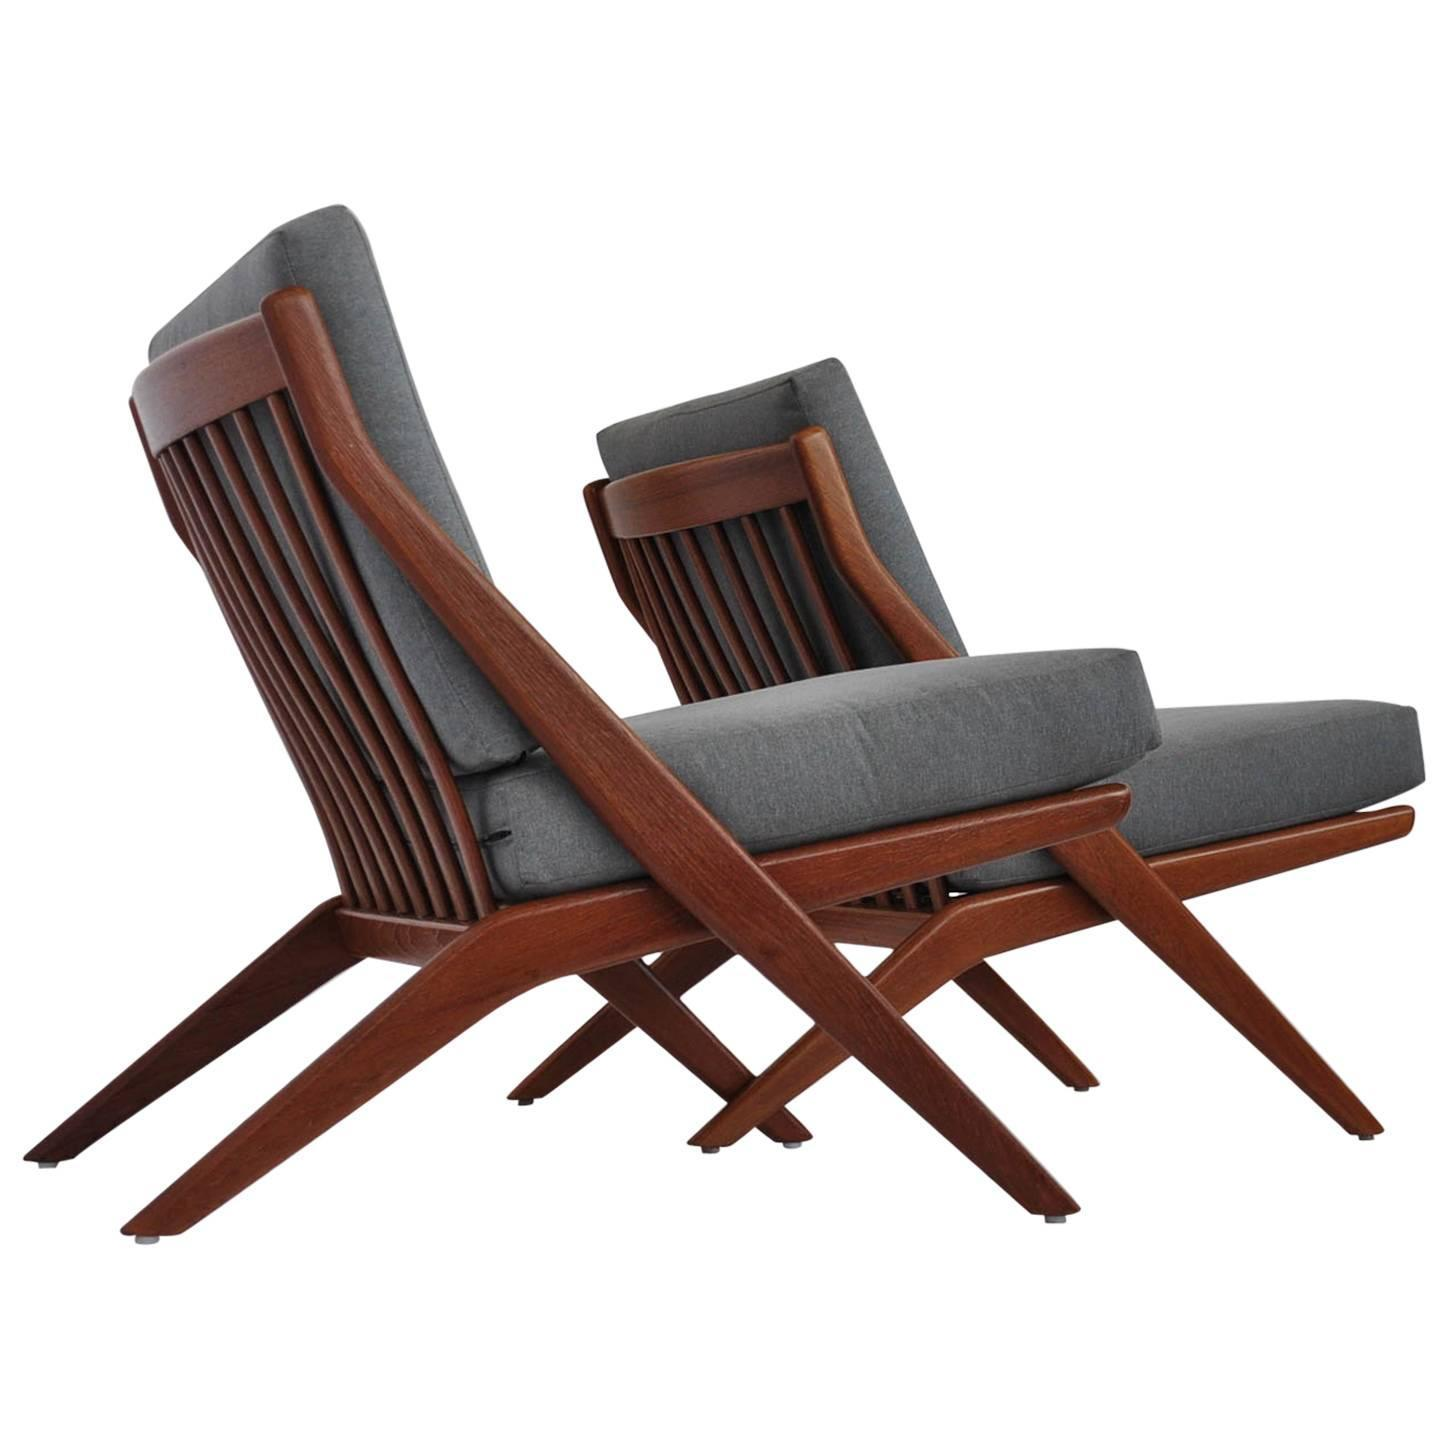 Pair of Teak Scissor Lounge Chairs by Folke Ohlsson for DUX at 1stdibs